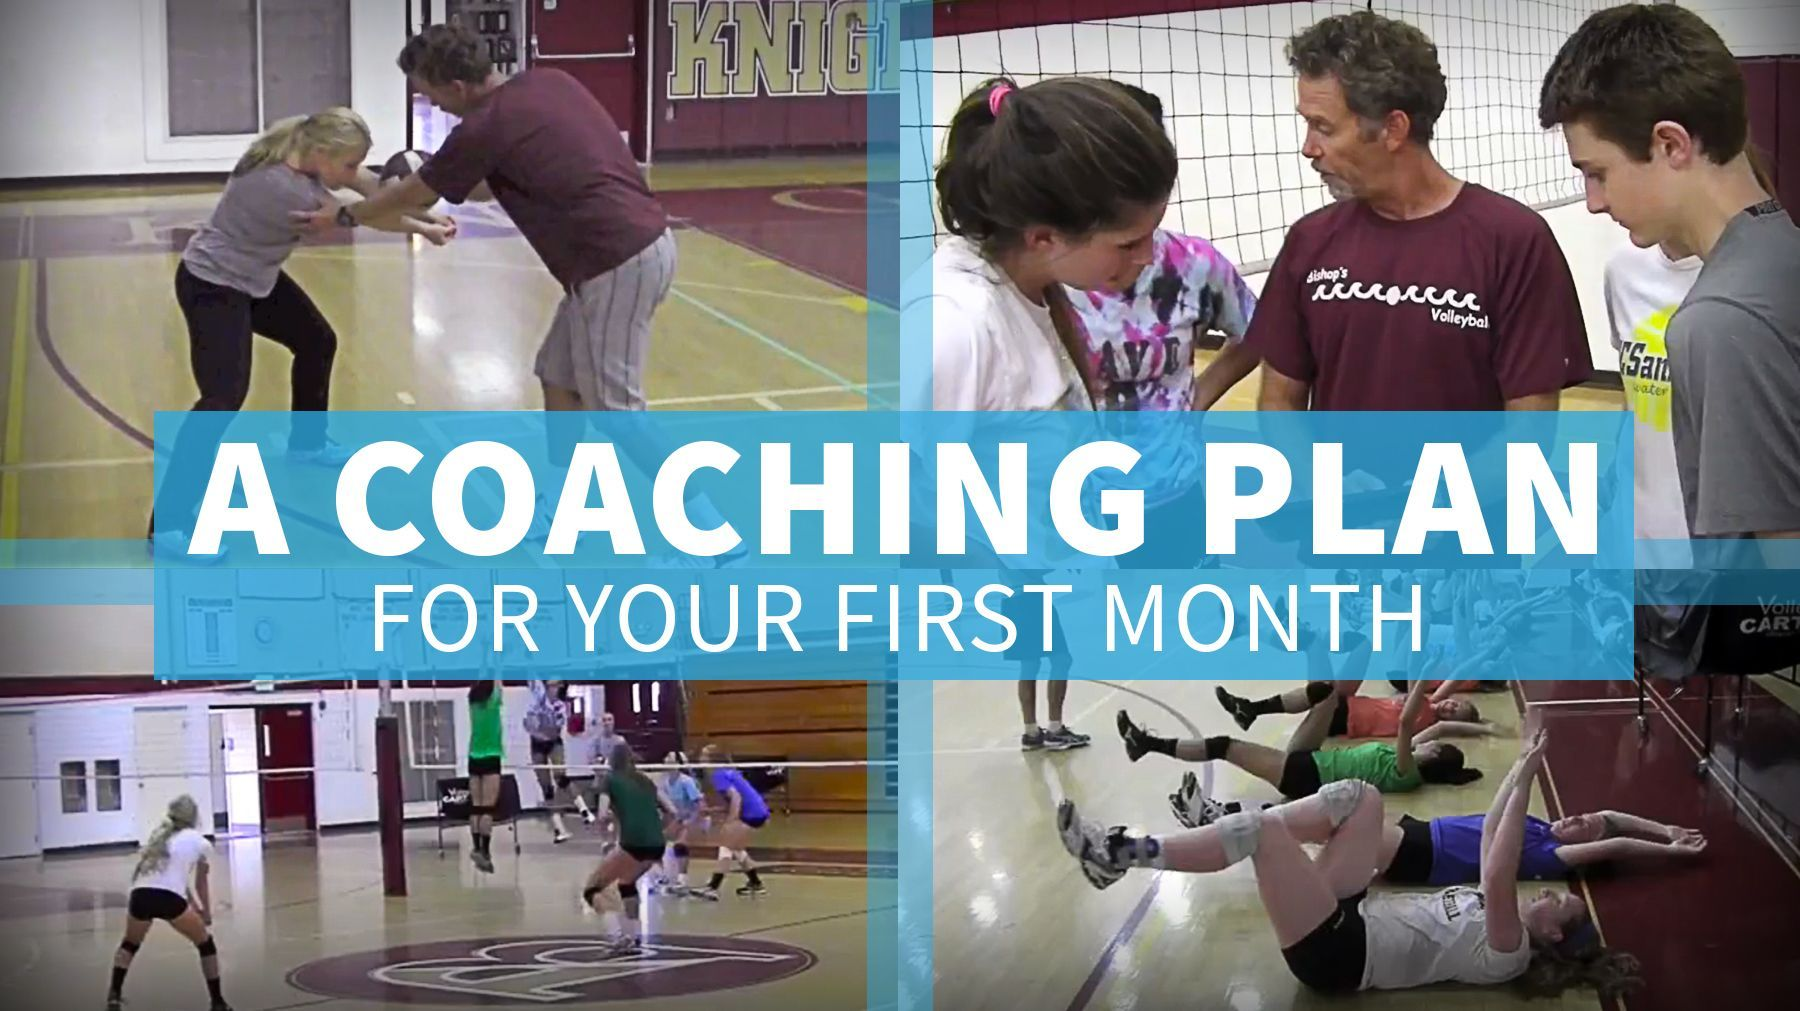 A Coaching Plan For The First Month Of The Volleyball Season The Art Of Coaching Volleyball Volleyball Skills Volleyball Training Coaching Volleyball